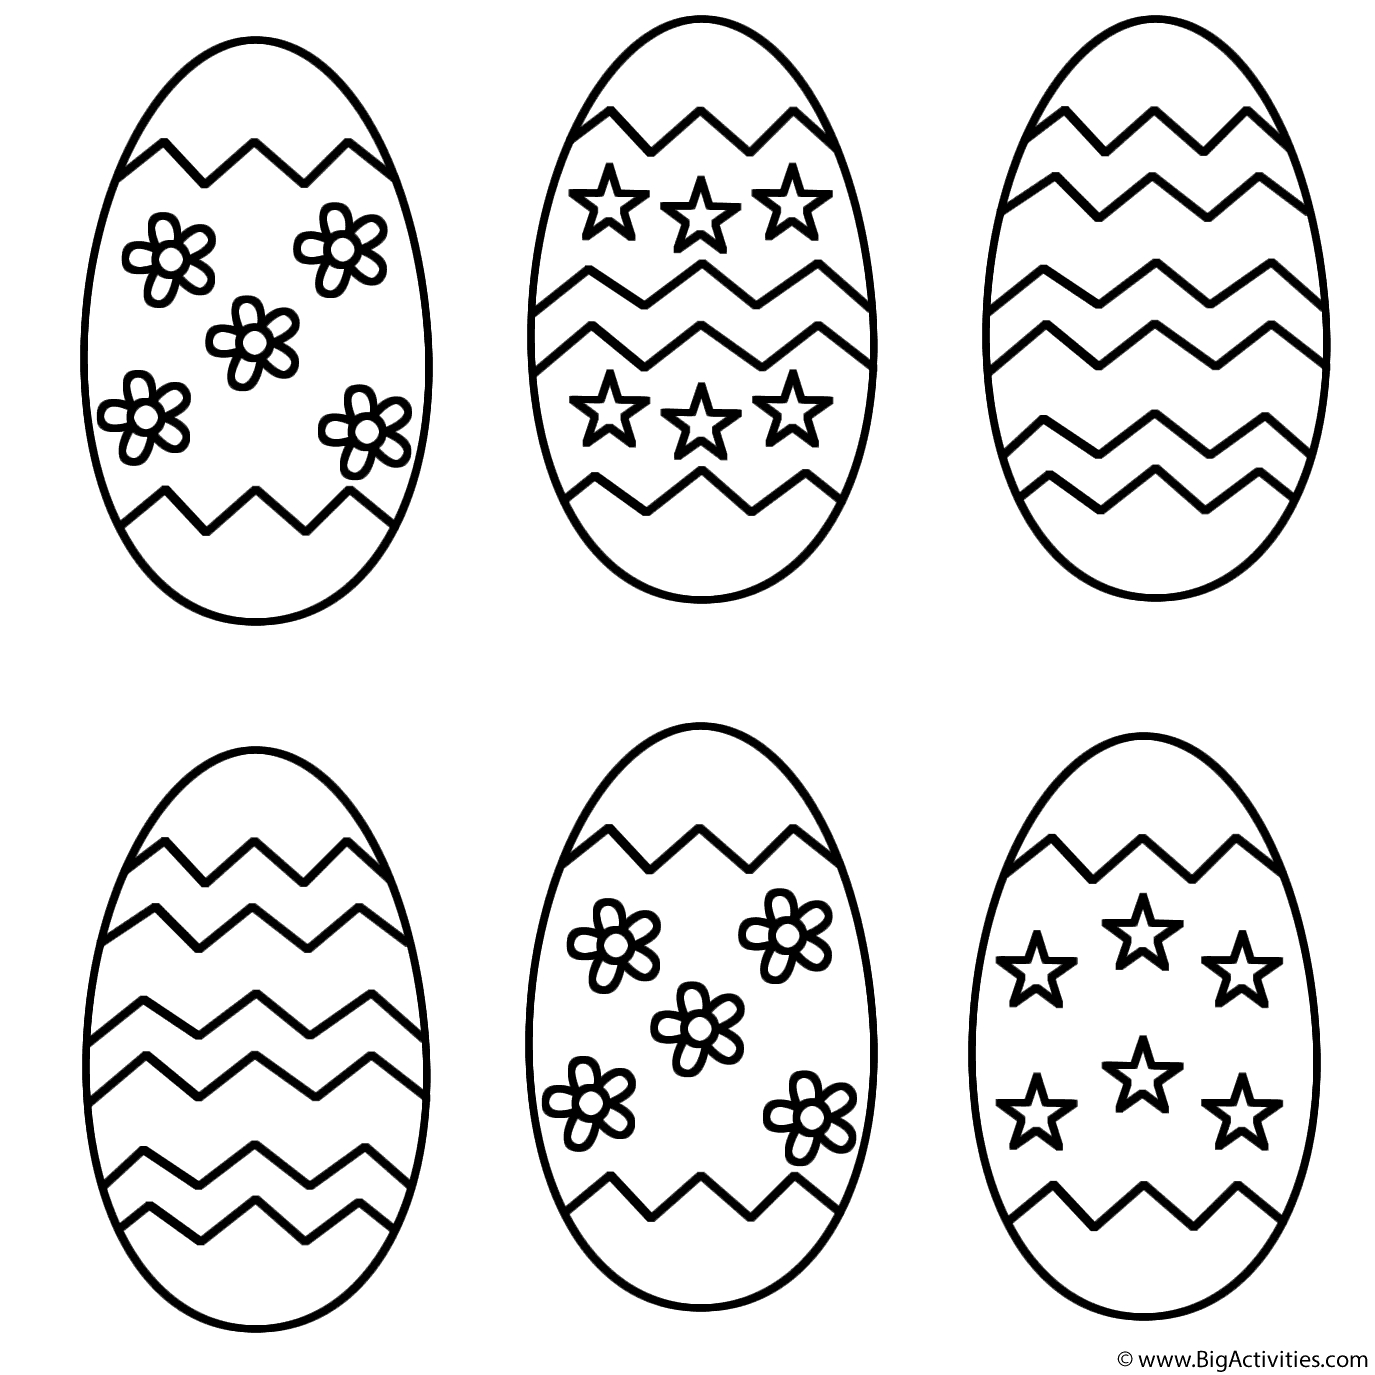 Easter Egg Coloring Page Coloring Coloring Easter Egg Pictures To Colour Russian Eggs Pages